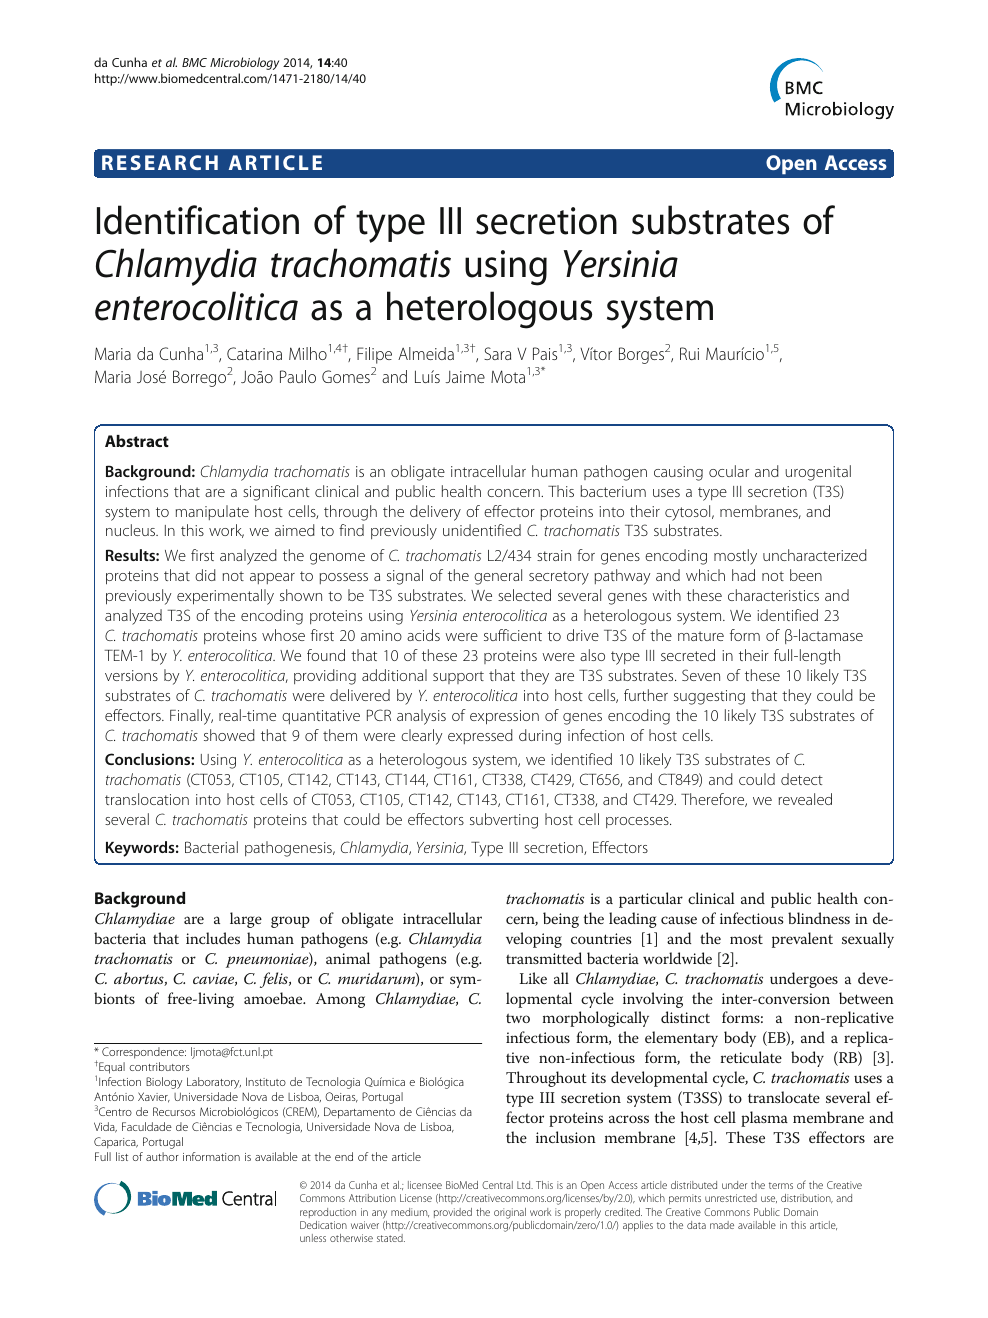 Identification Of Type Iii Secretion Substrates Of Chlamydia Trachomatis Using Yersinia Enterocolitica As A Heterologous System Topic Of Research Paper In Biological Sciences Download Scholarly Article Pdf And Read For Free